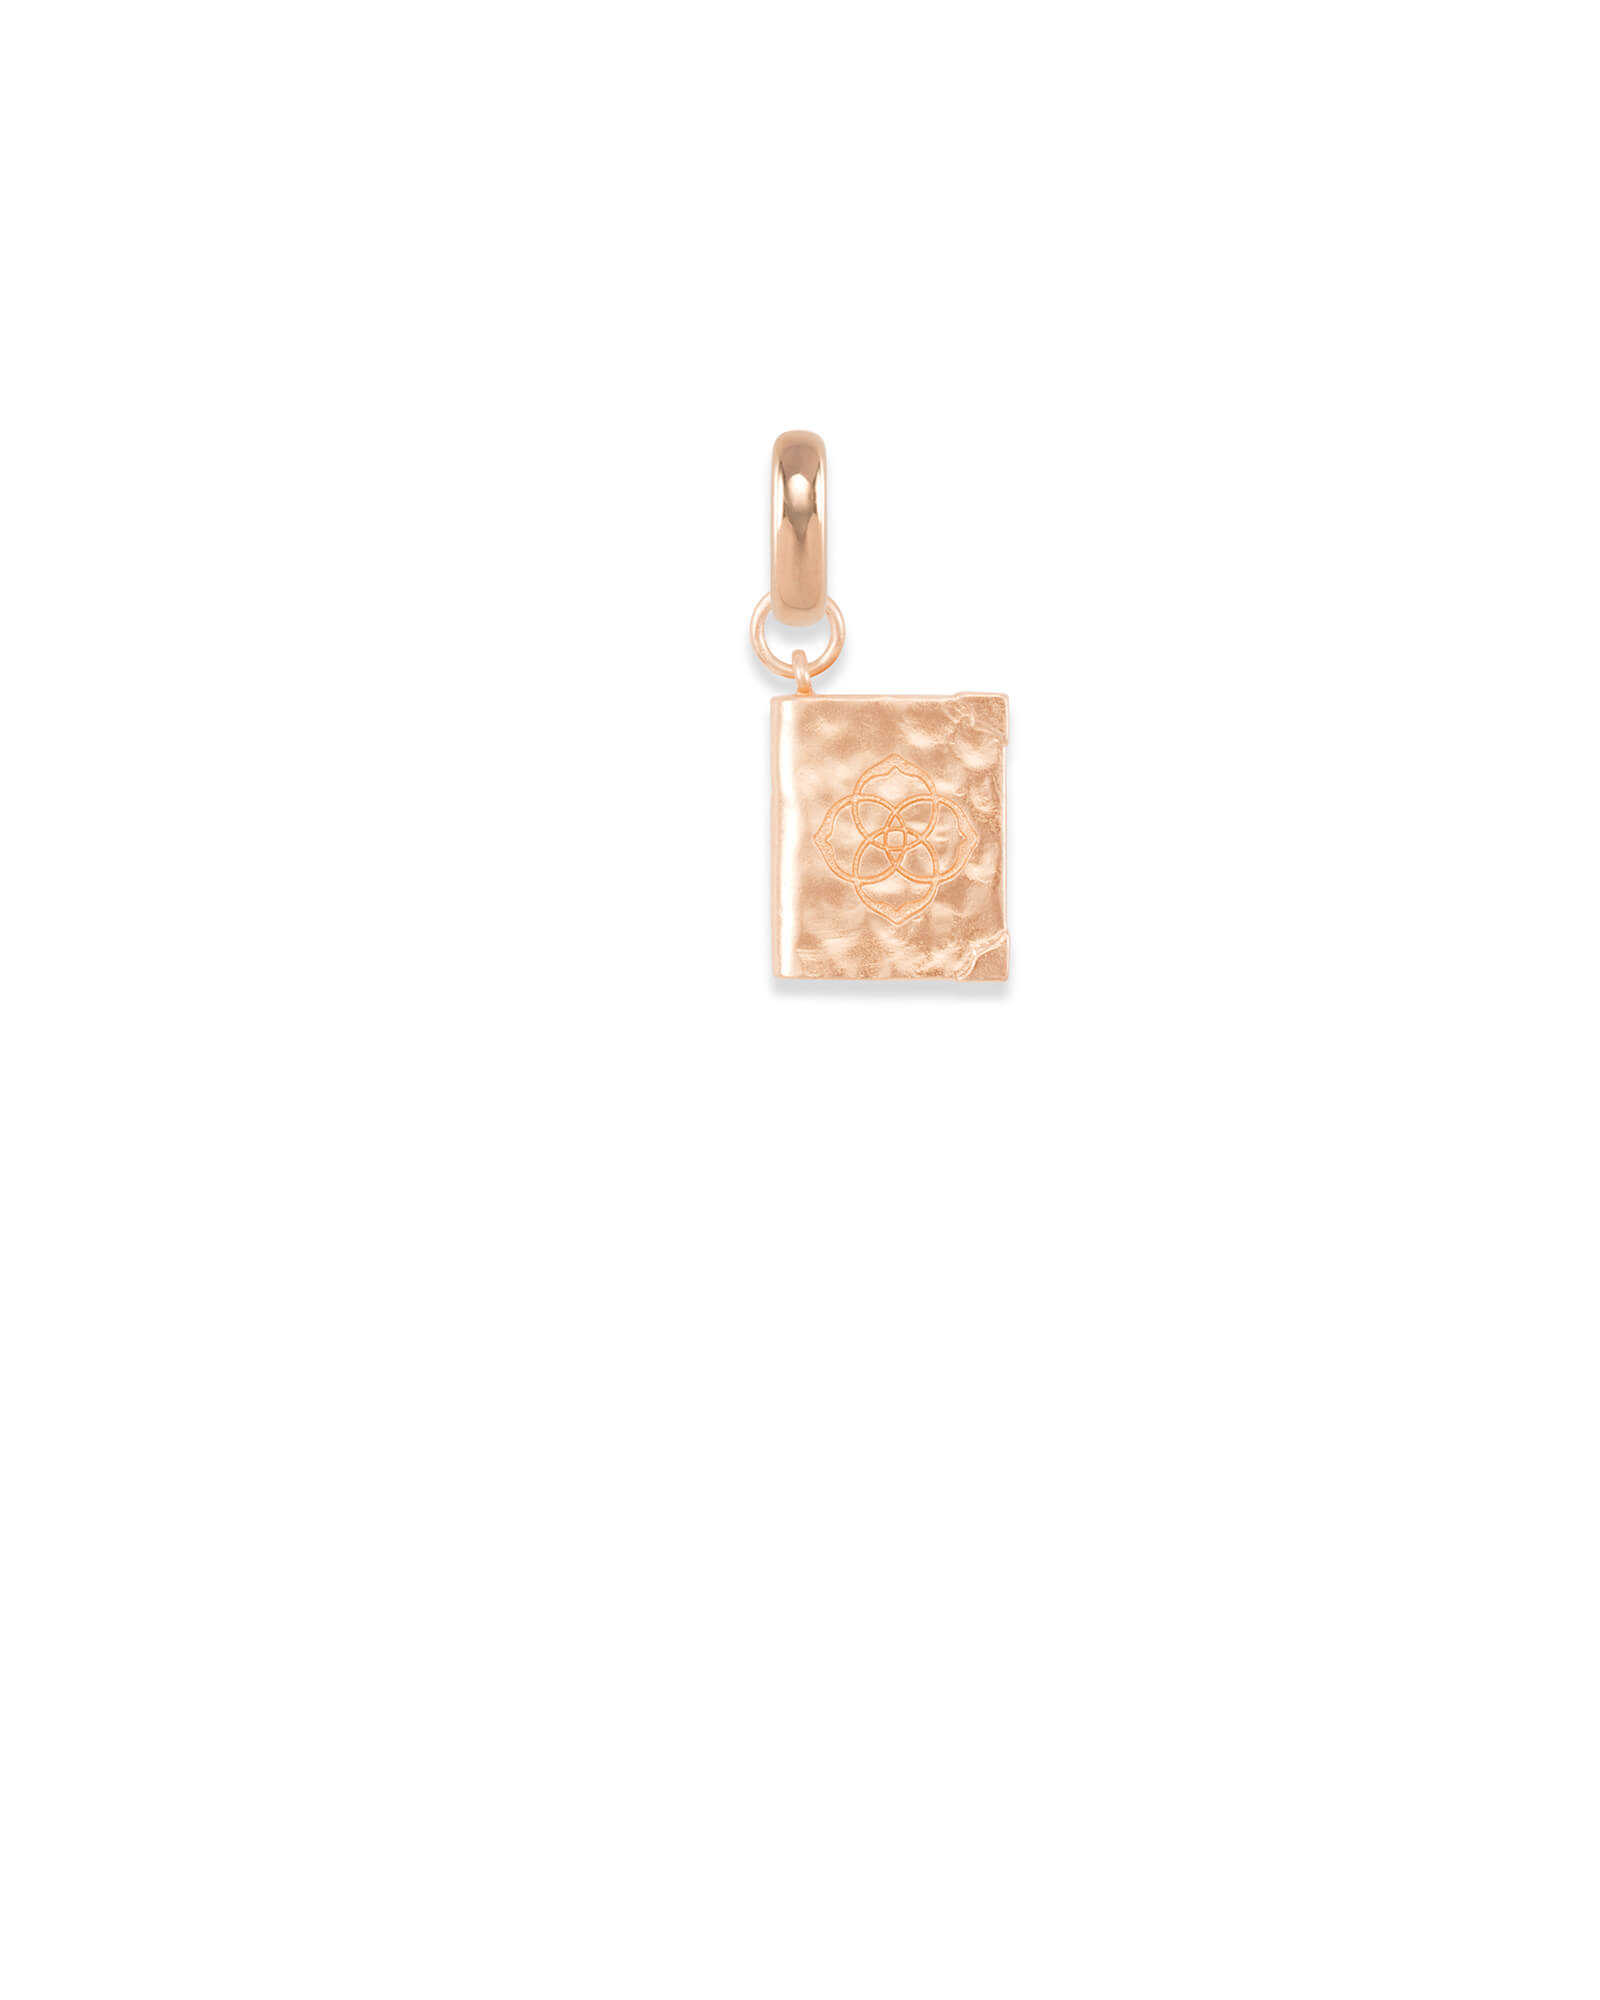 Literacy Charm in Rose Gold